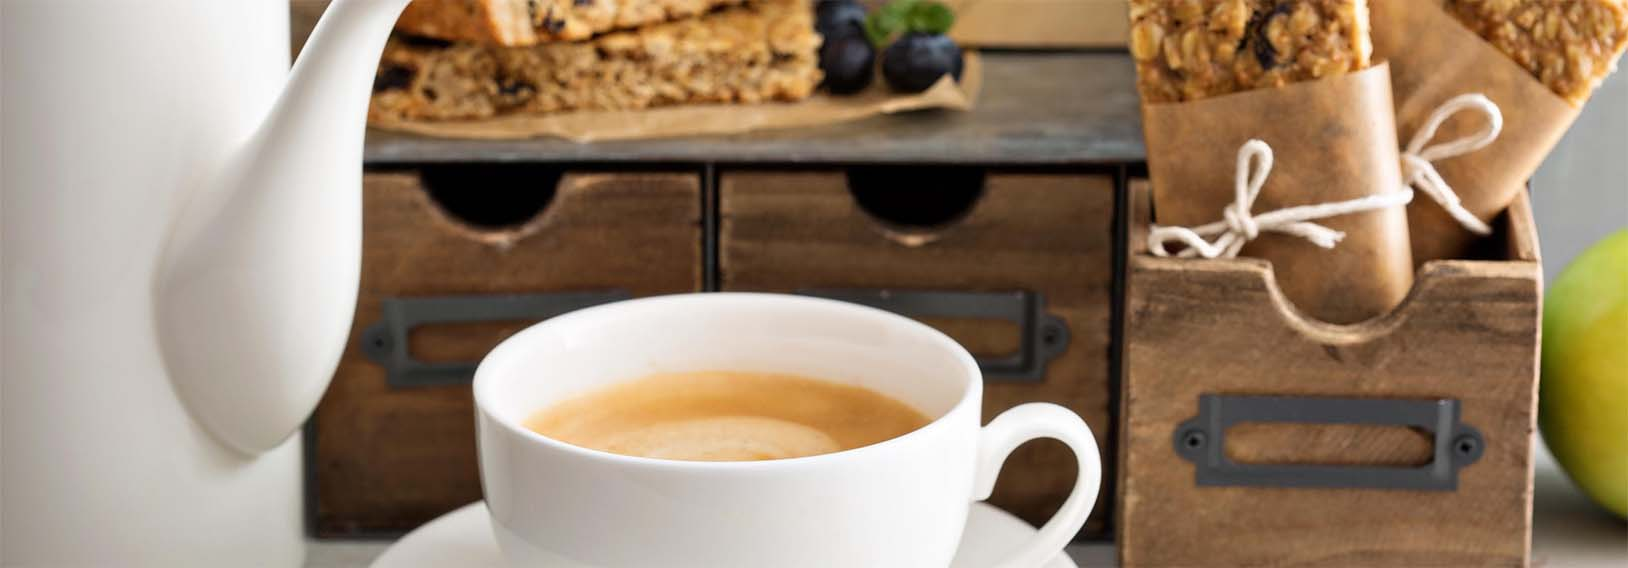 Sweet & Healthy Ideas for Tea and Coffee Snacks